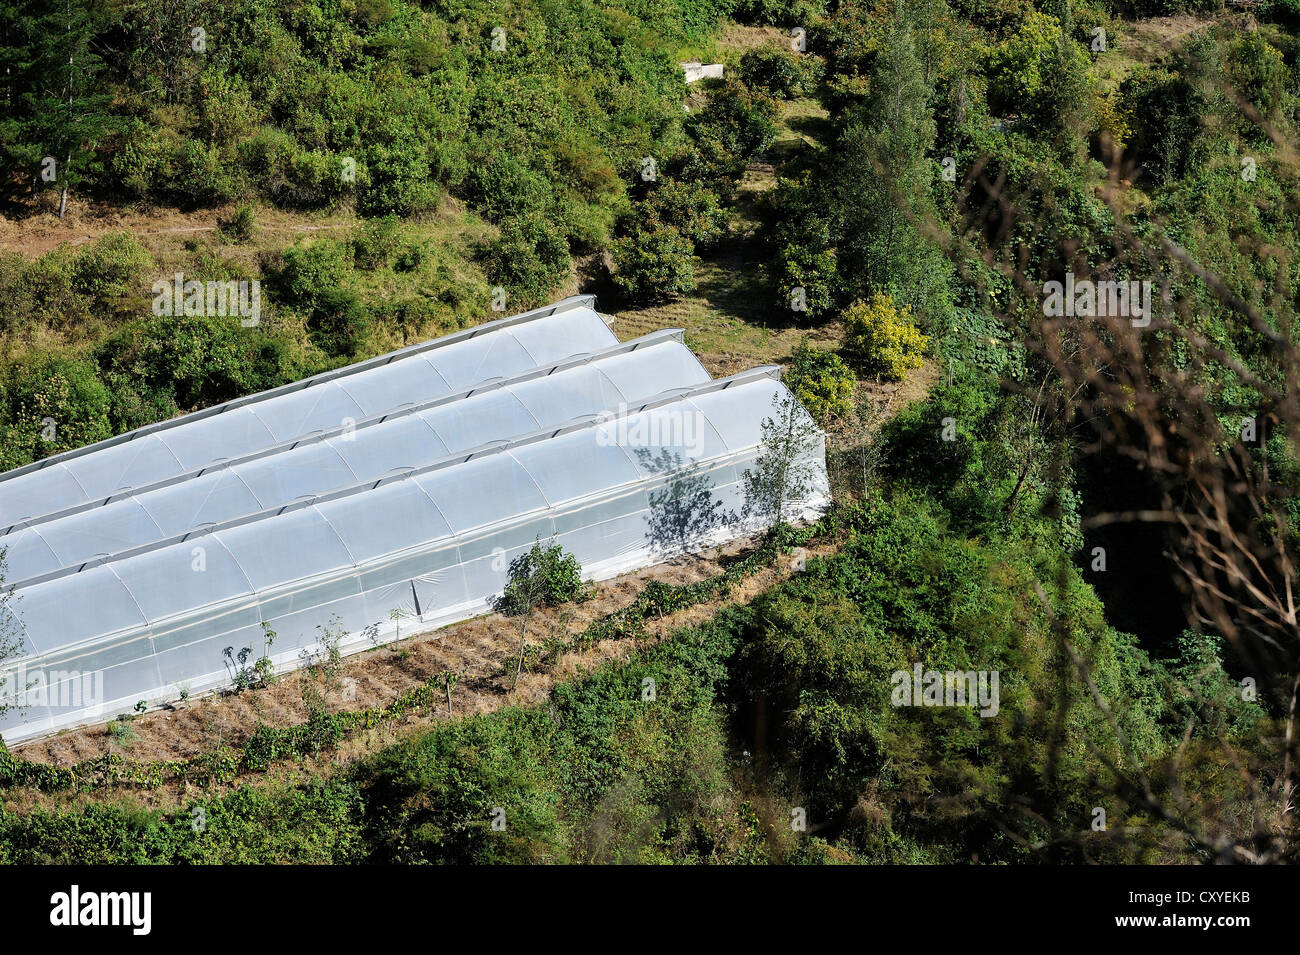 Greenhouses for growing tomatoes (Solanum lycopersicum), community of Mariano Acosta, Canton Pimampiro, Provincia - Stock Image